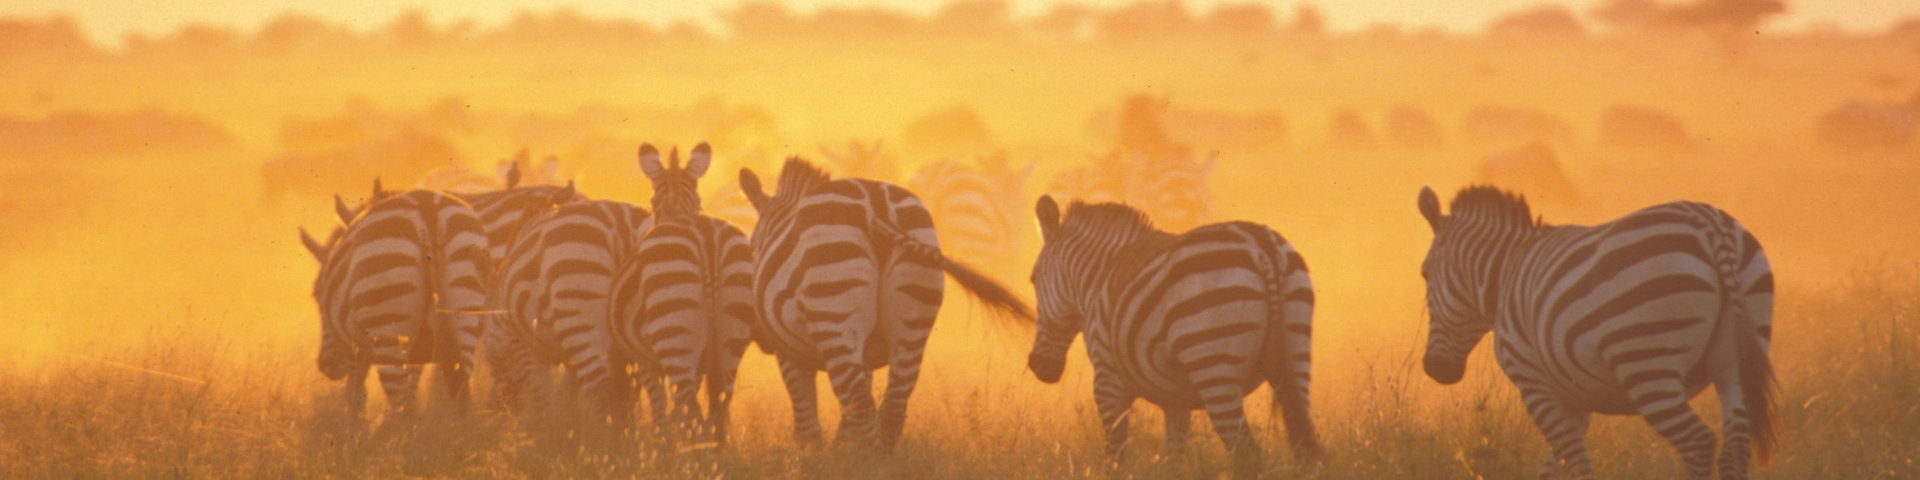 Tours and Safaris to Tanzania Zebras at Dawn in West Kilimanjaro